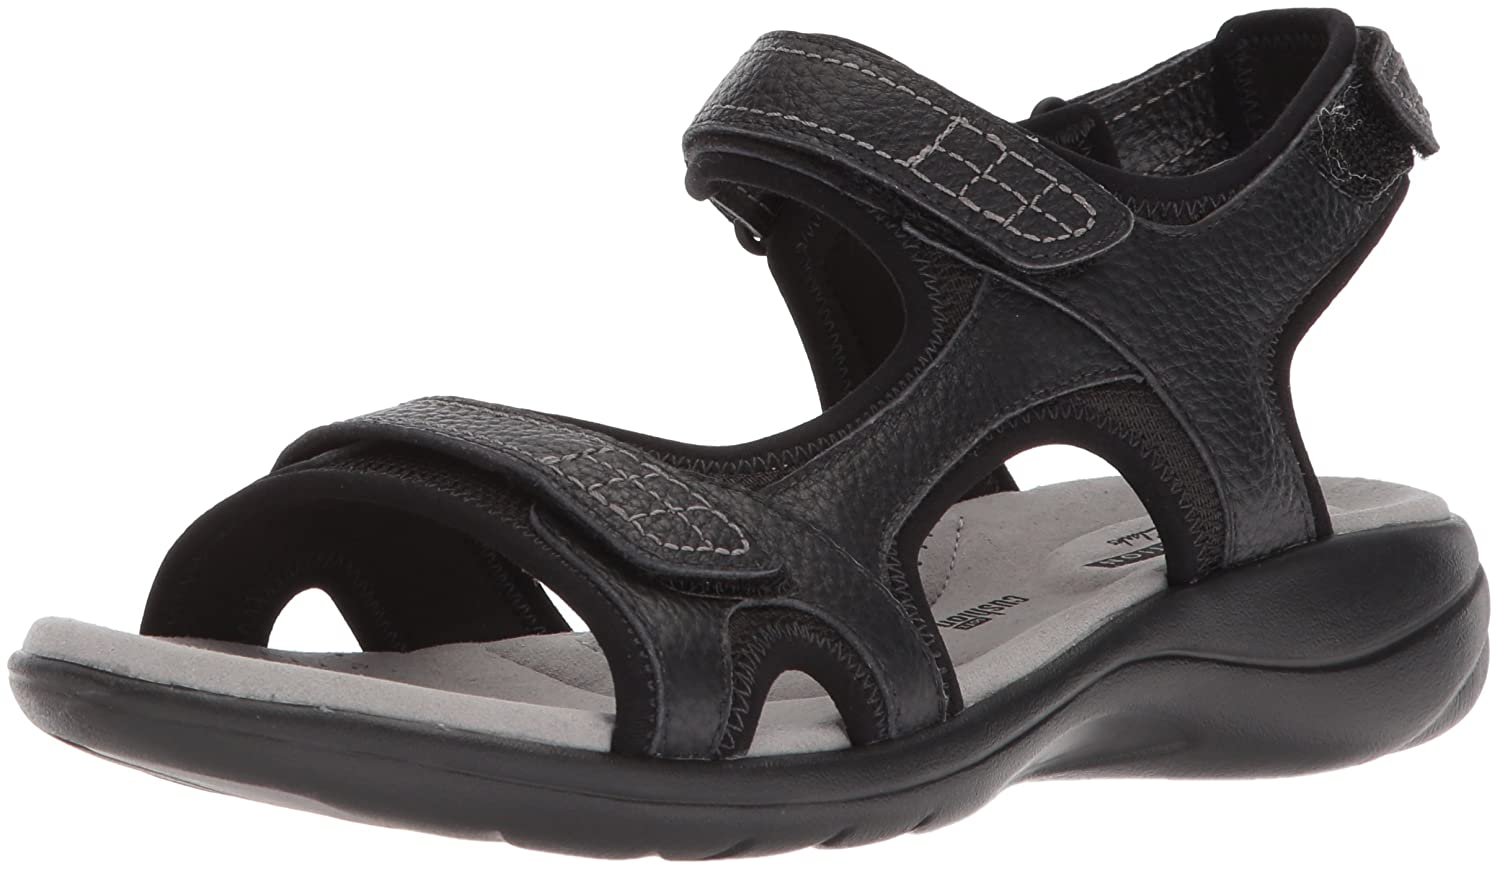 CLARKS Women's Saylie Jade Sandal B073Q584PX 9.5 B(M) US|Black Tumbled Leather